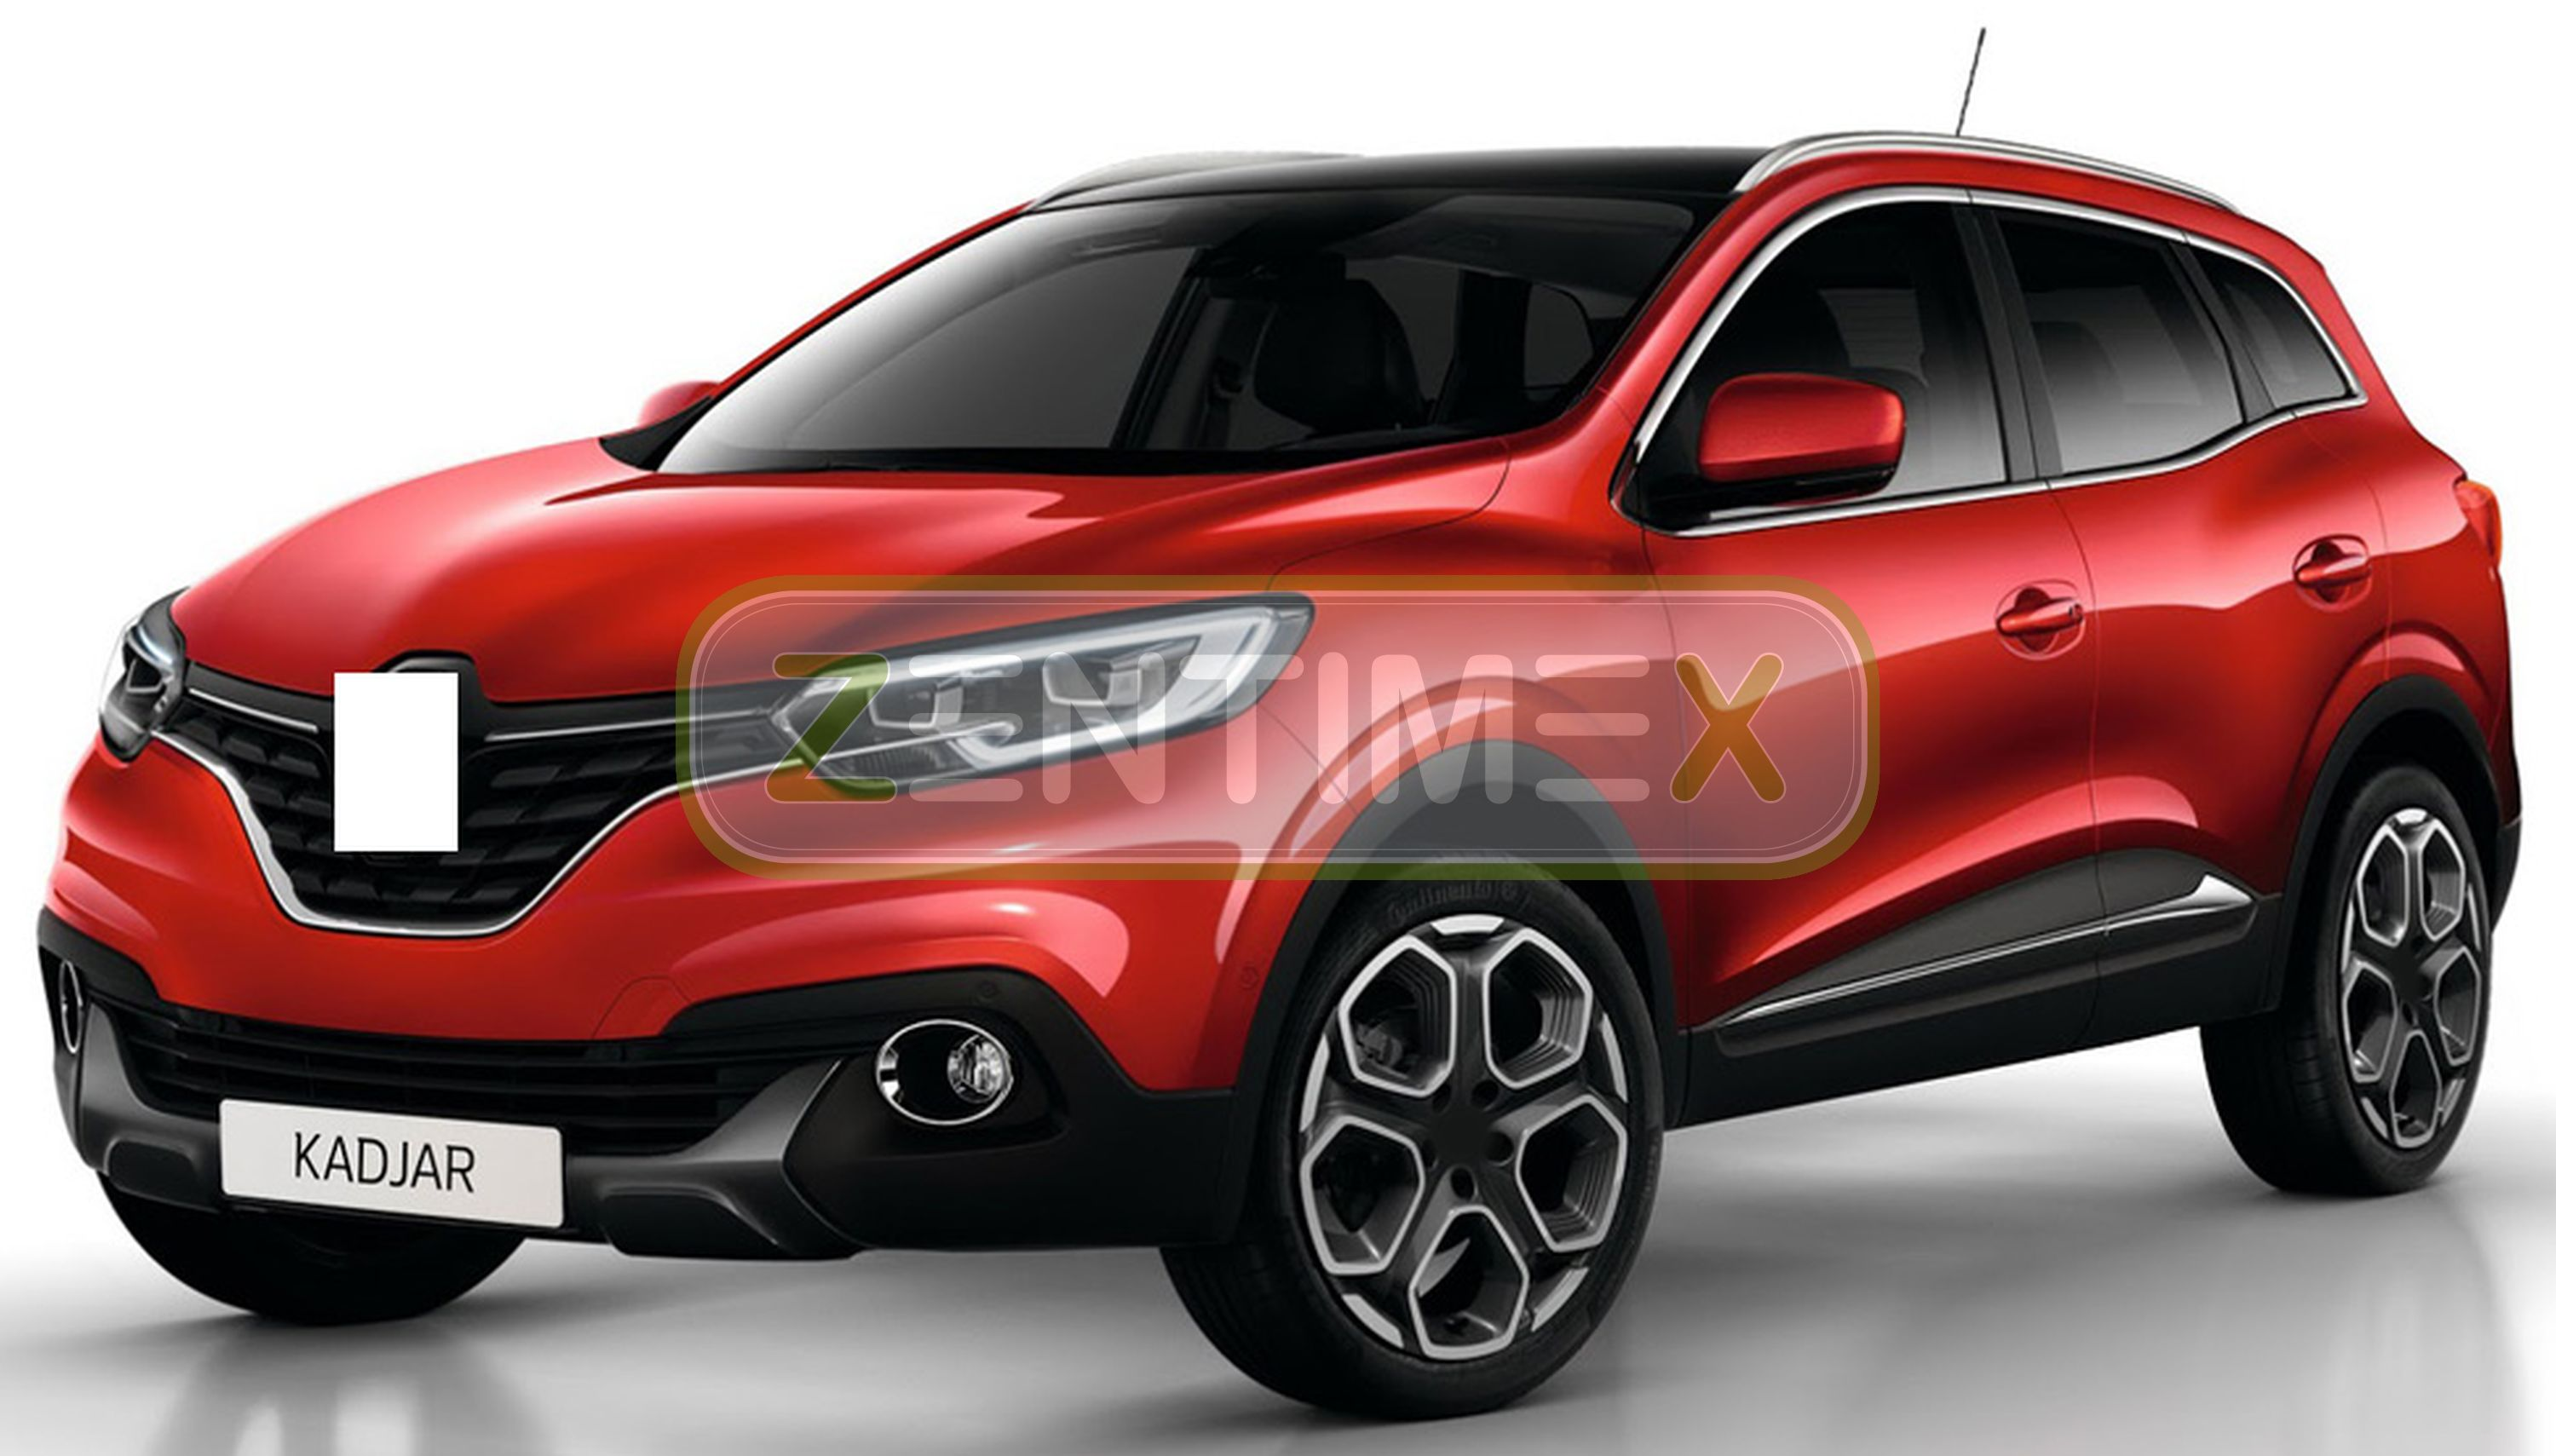 Fluted Boot Liner for Renault Kadjar Hatch Off-Road Vehicle SUV 5-türer